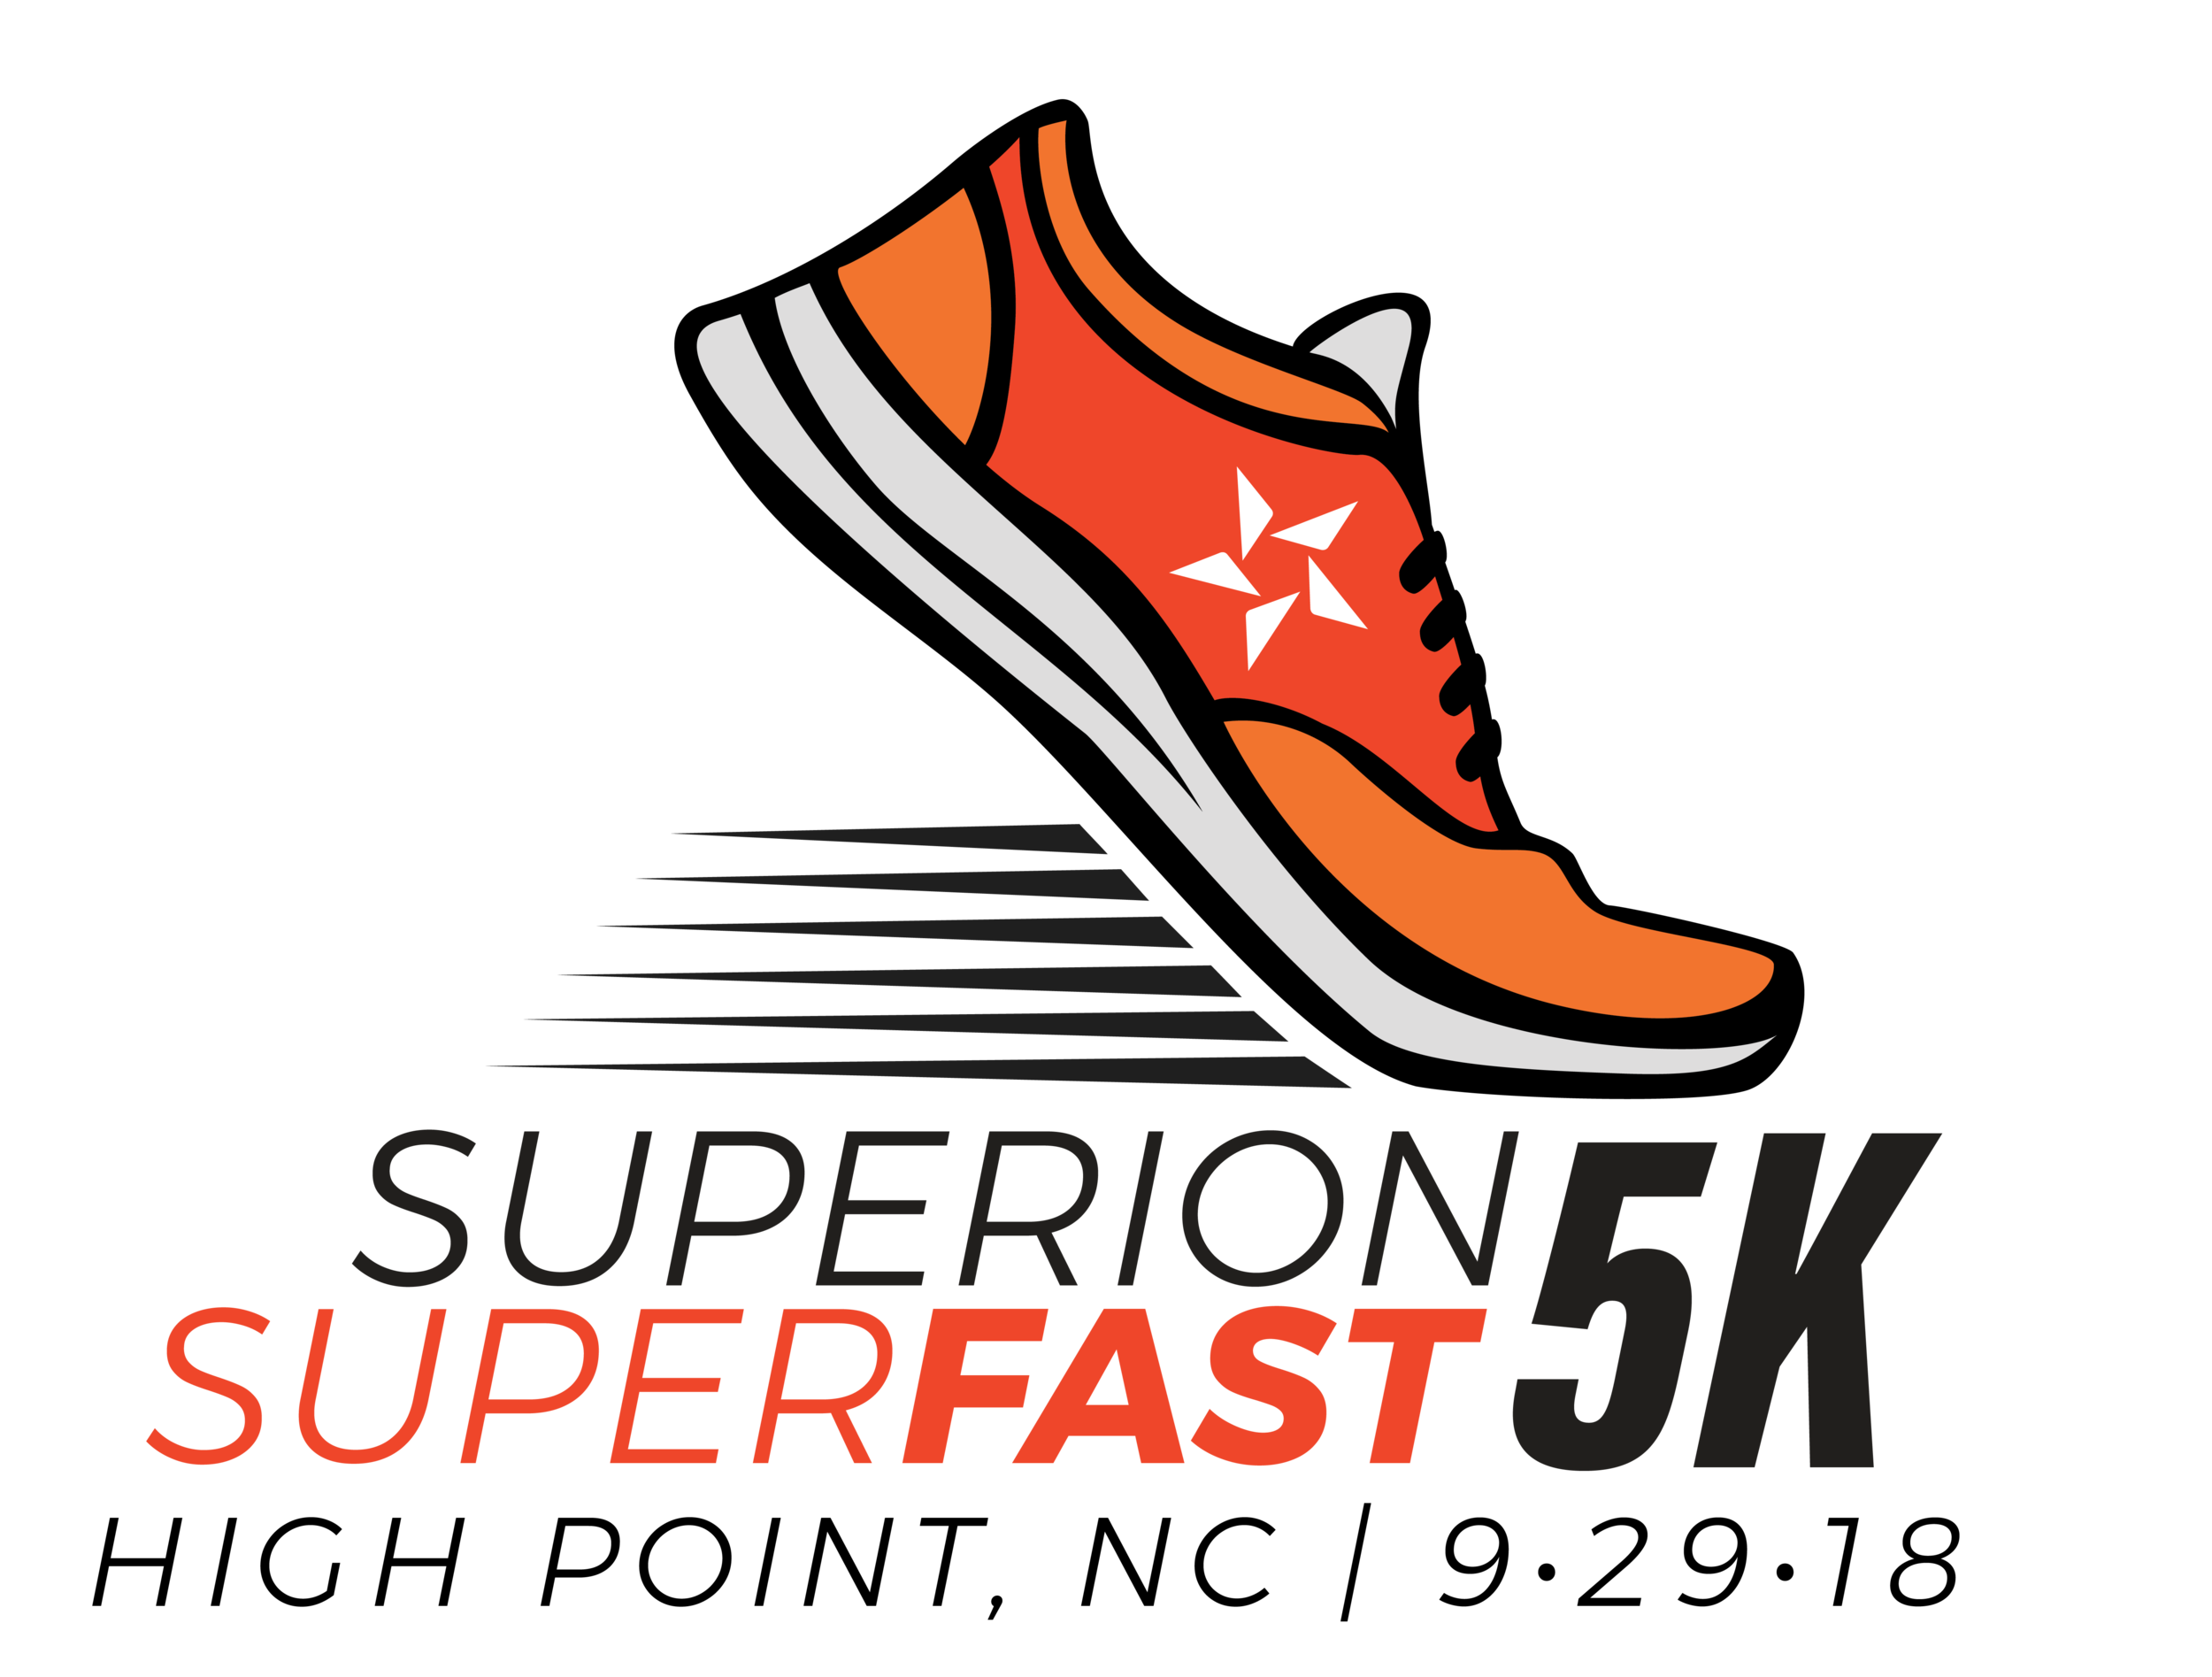 SuperFast5k-HighpointLogo.png